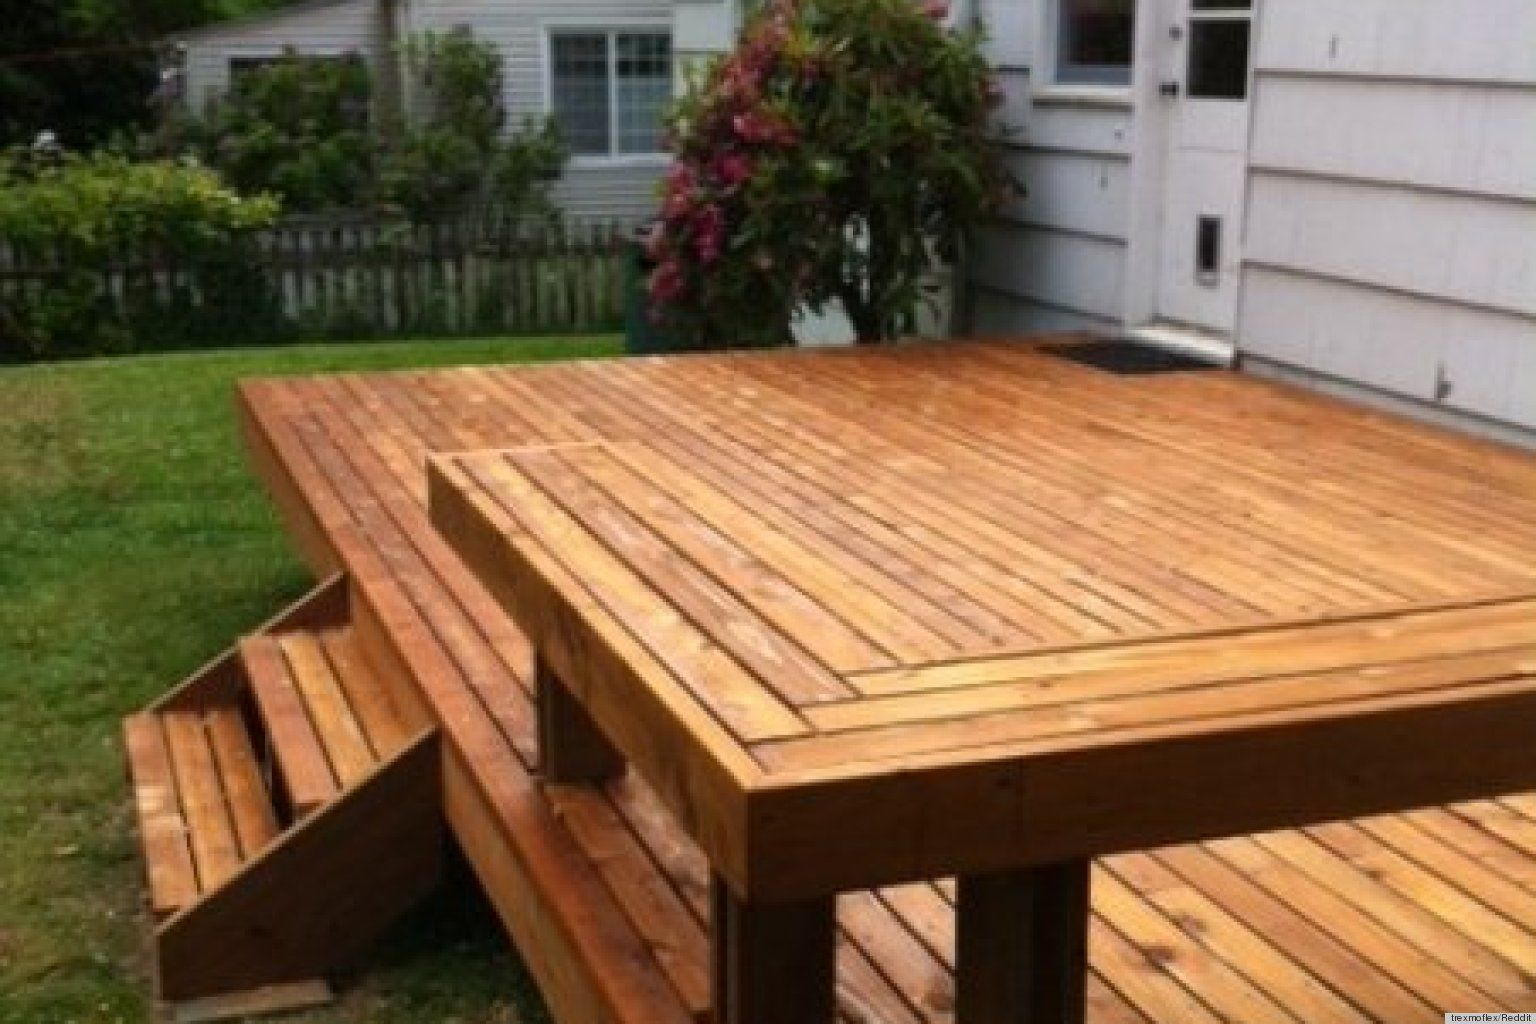 Small Backyard Decks on Pinterest | Low Deck Designs, Backyard Deck ...